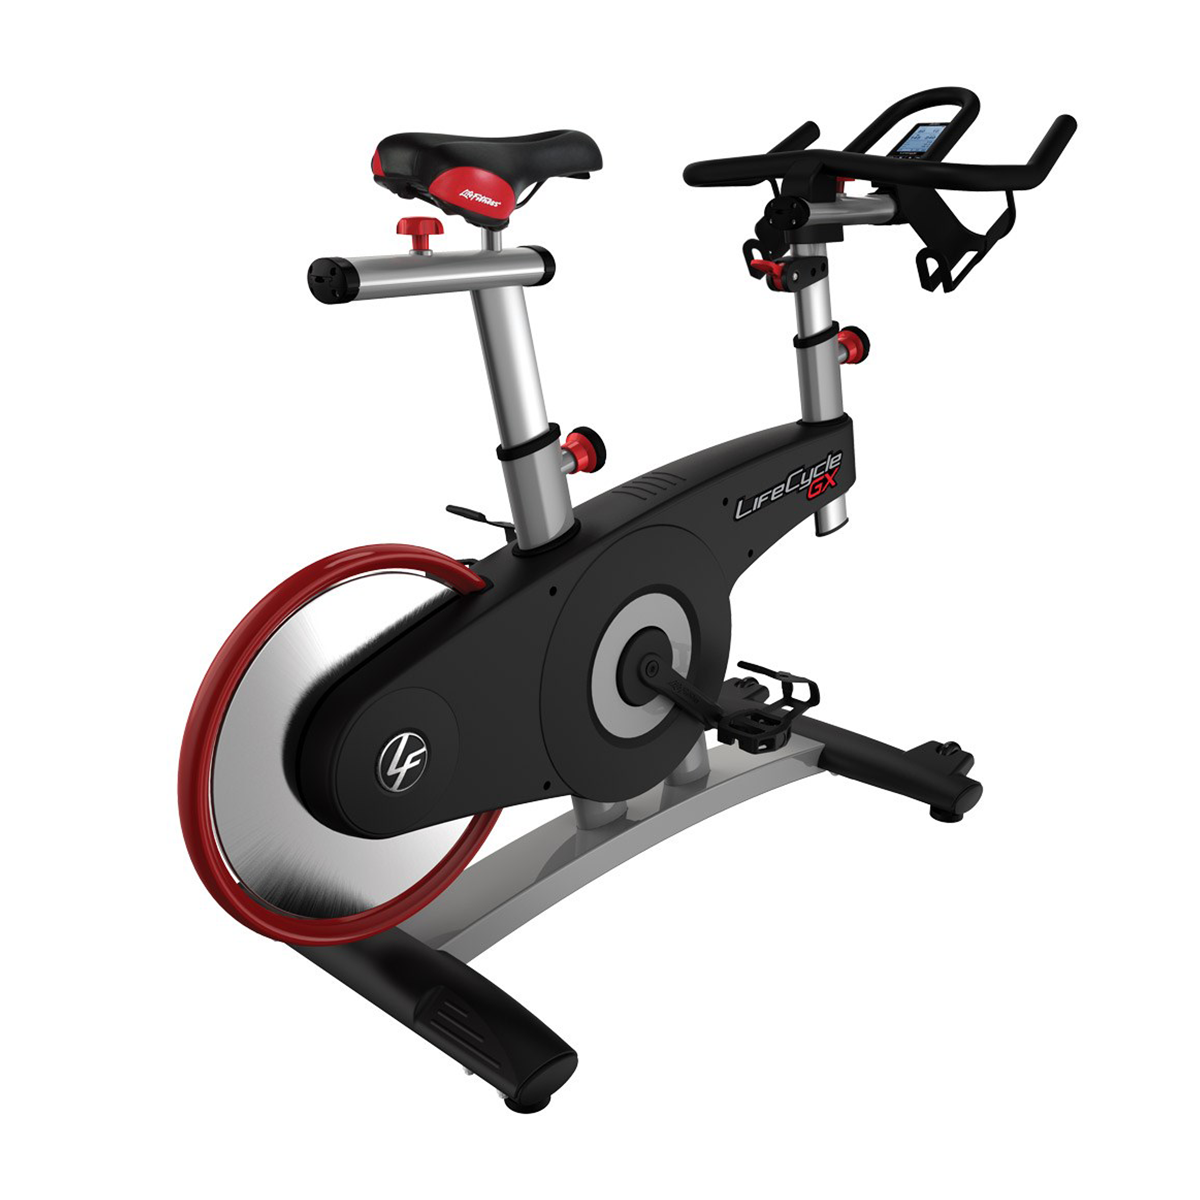 Lifecycle Gx Group Exercise Bike With Console Life Fitness